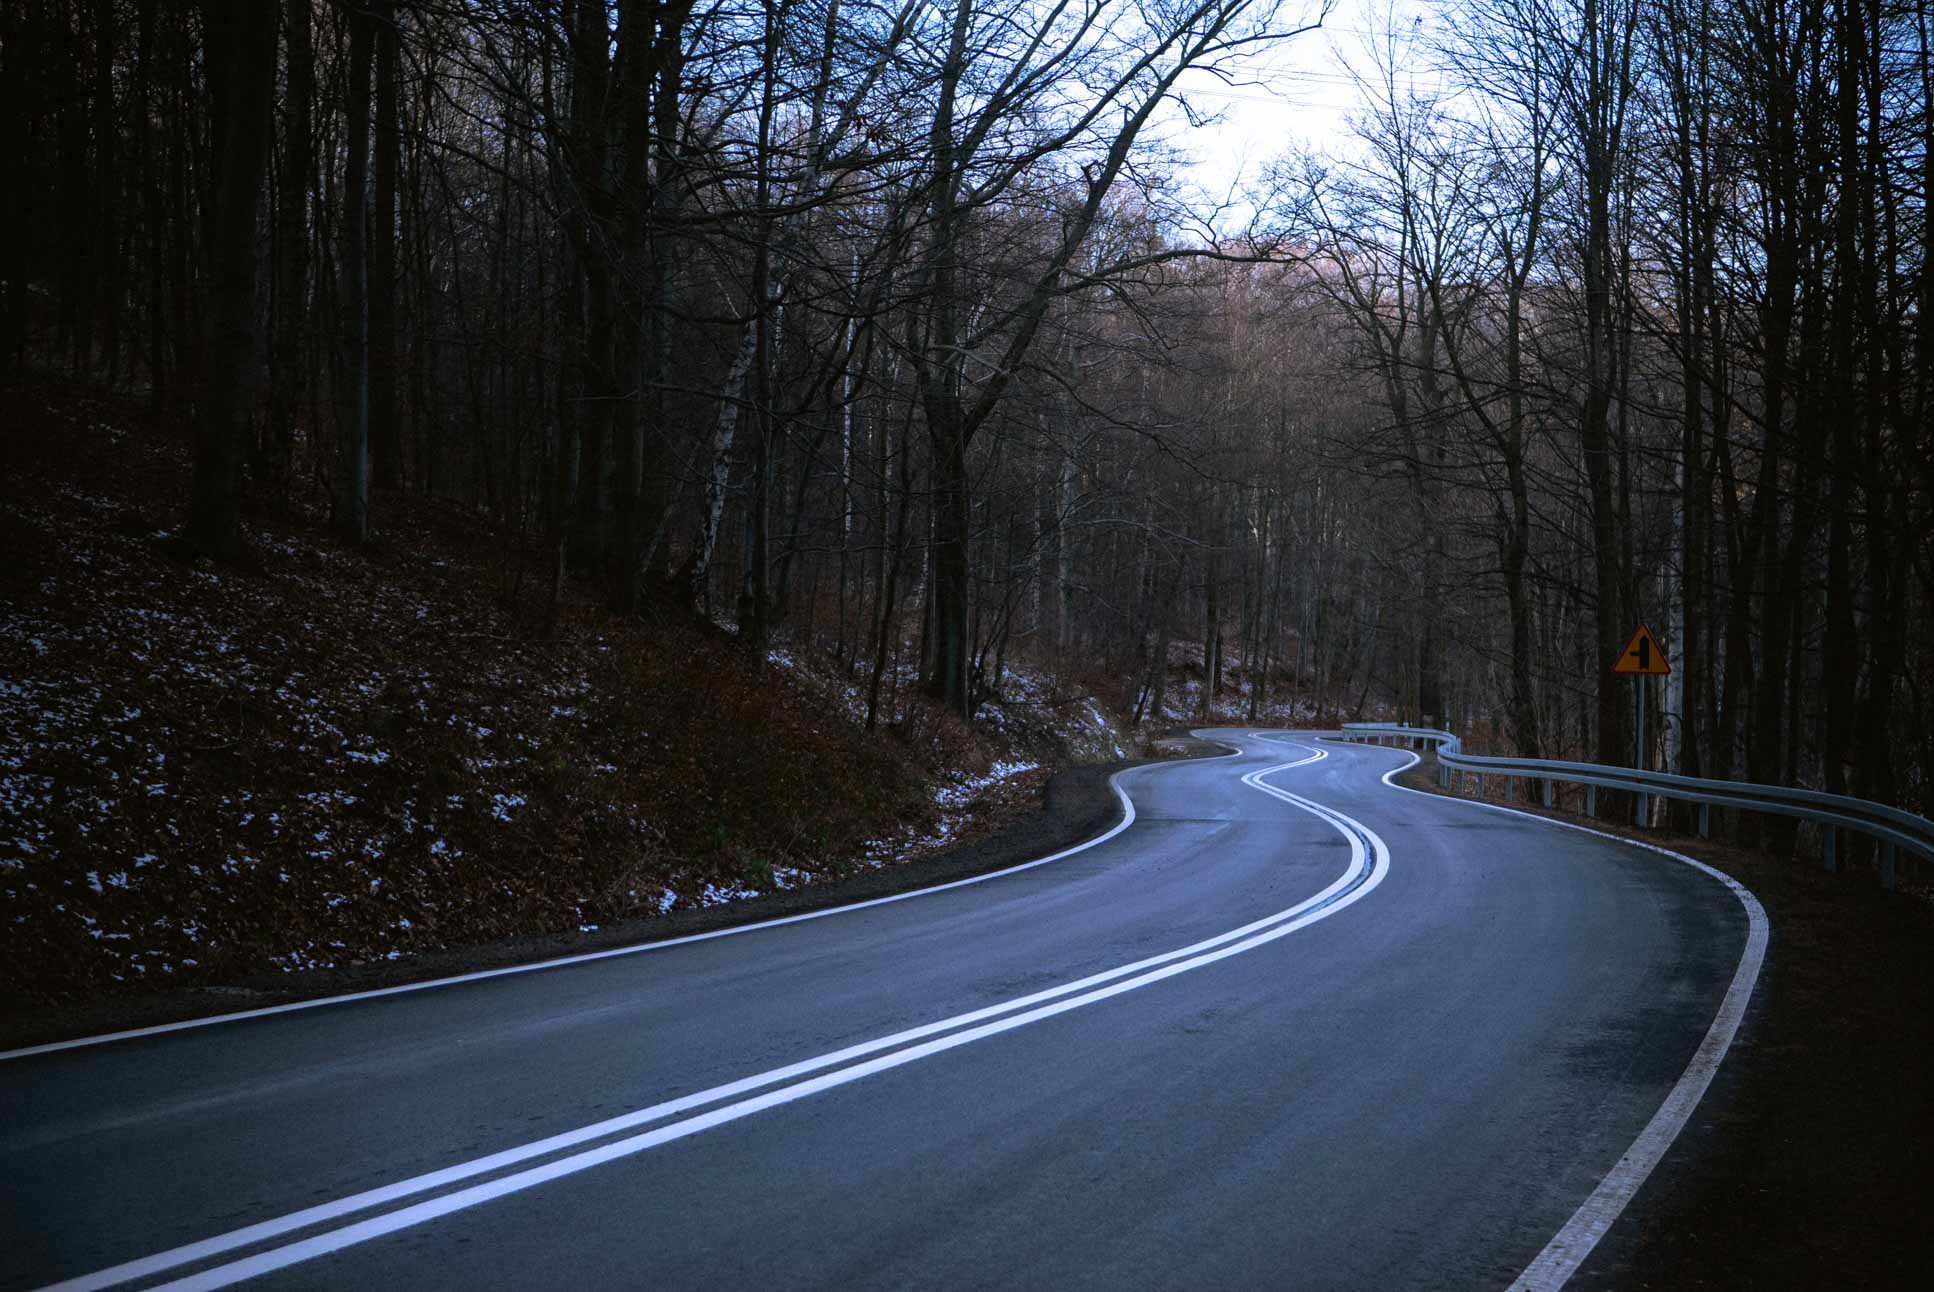 Very tempting to ride a longboard down this road, might not be the safest thing to do though